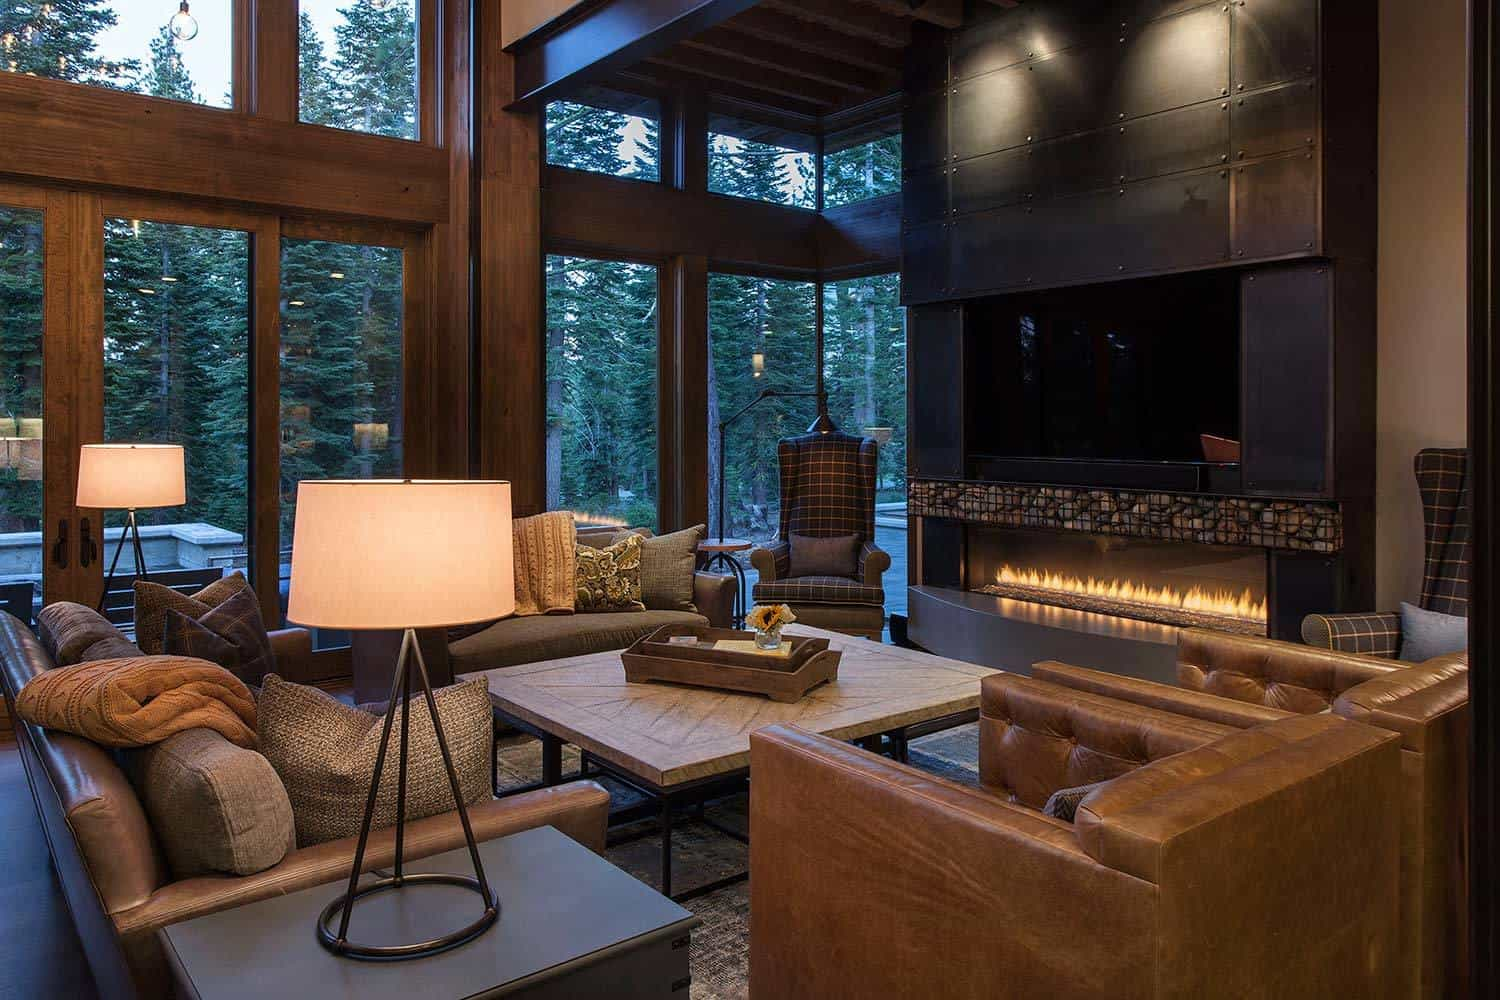 Lake tahoe getaway features contemporary barn aesthetic for Decor interior design